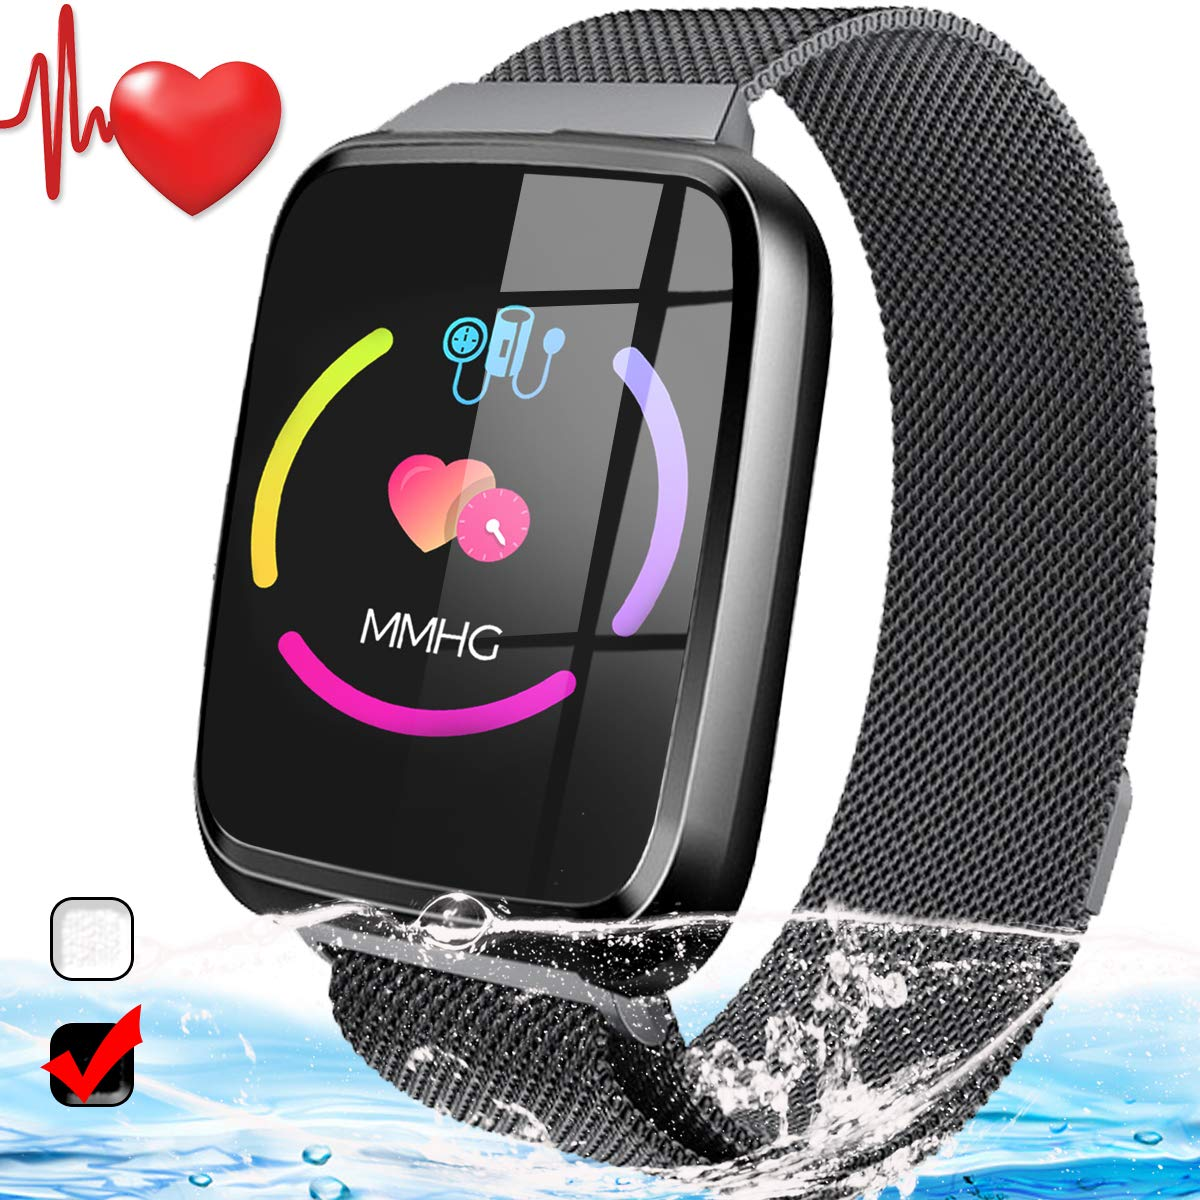 Beasyjoy Fitness Tracker, Activity Tracker Watch with Heart Rate Monitor,Fitness Wristband IP68 Waterproof Smart Band with HR Step Counter,Calorie Counter,Pedometer for Kids Women Men